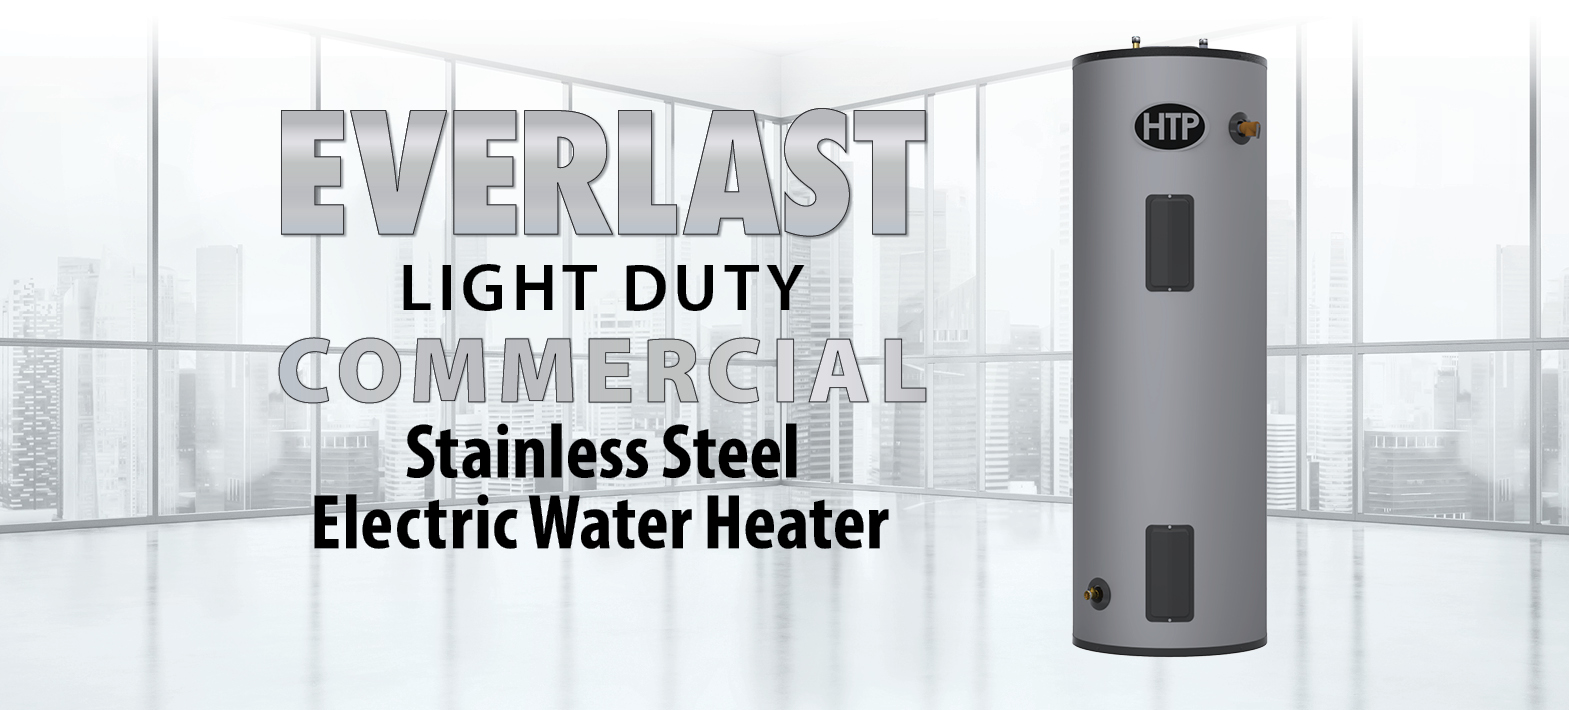 Htp Everlast Light Duty Commercial Electric Water Heater